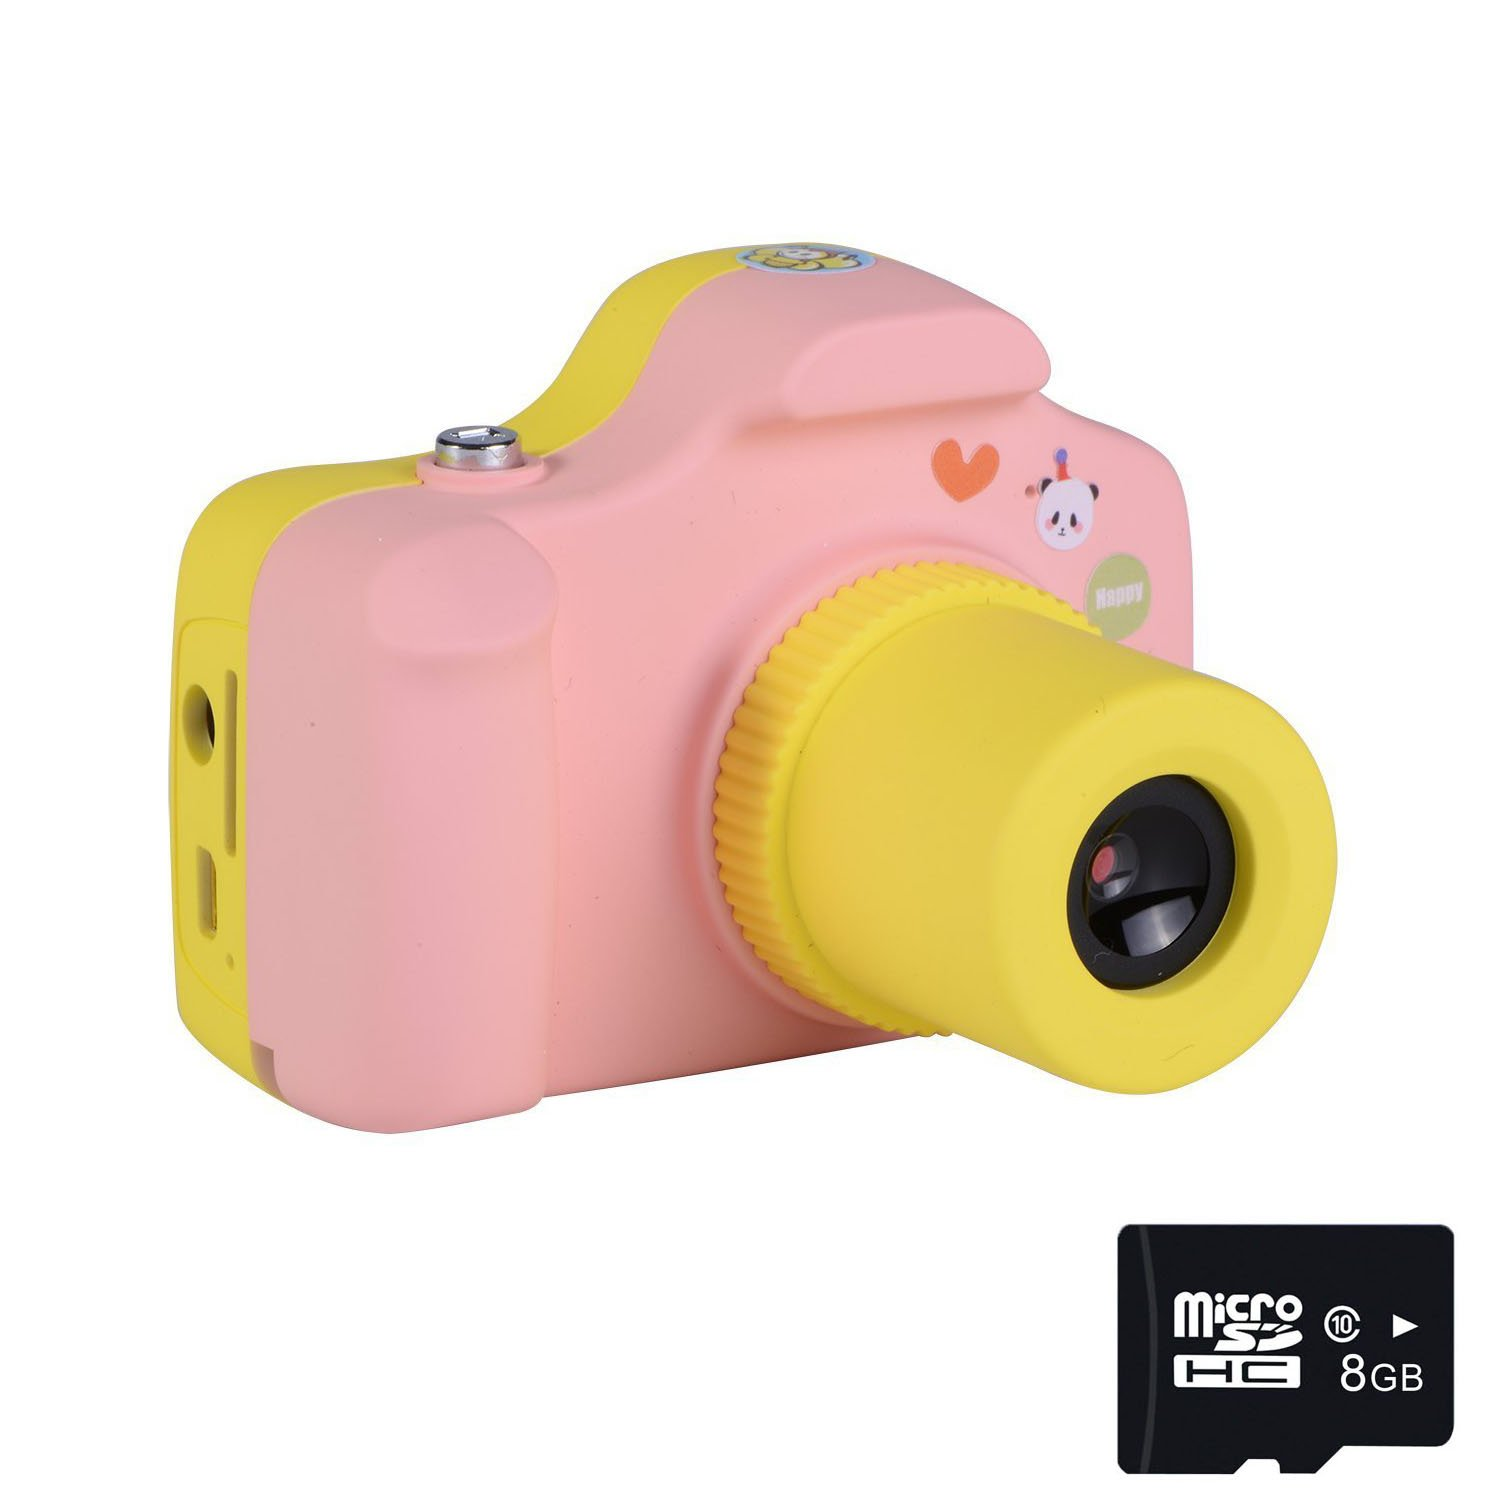 PANNOVO Mini 1.5 Inch Screen Children Kids Digital Camera with 8GB Cards (Pink)